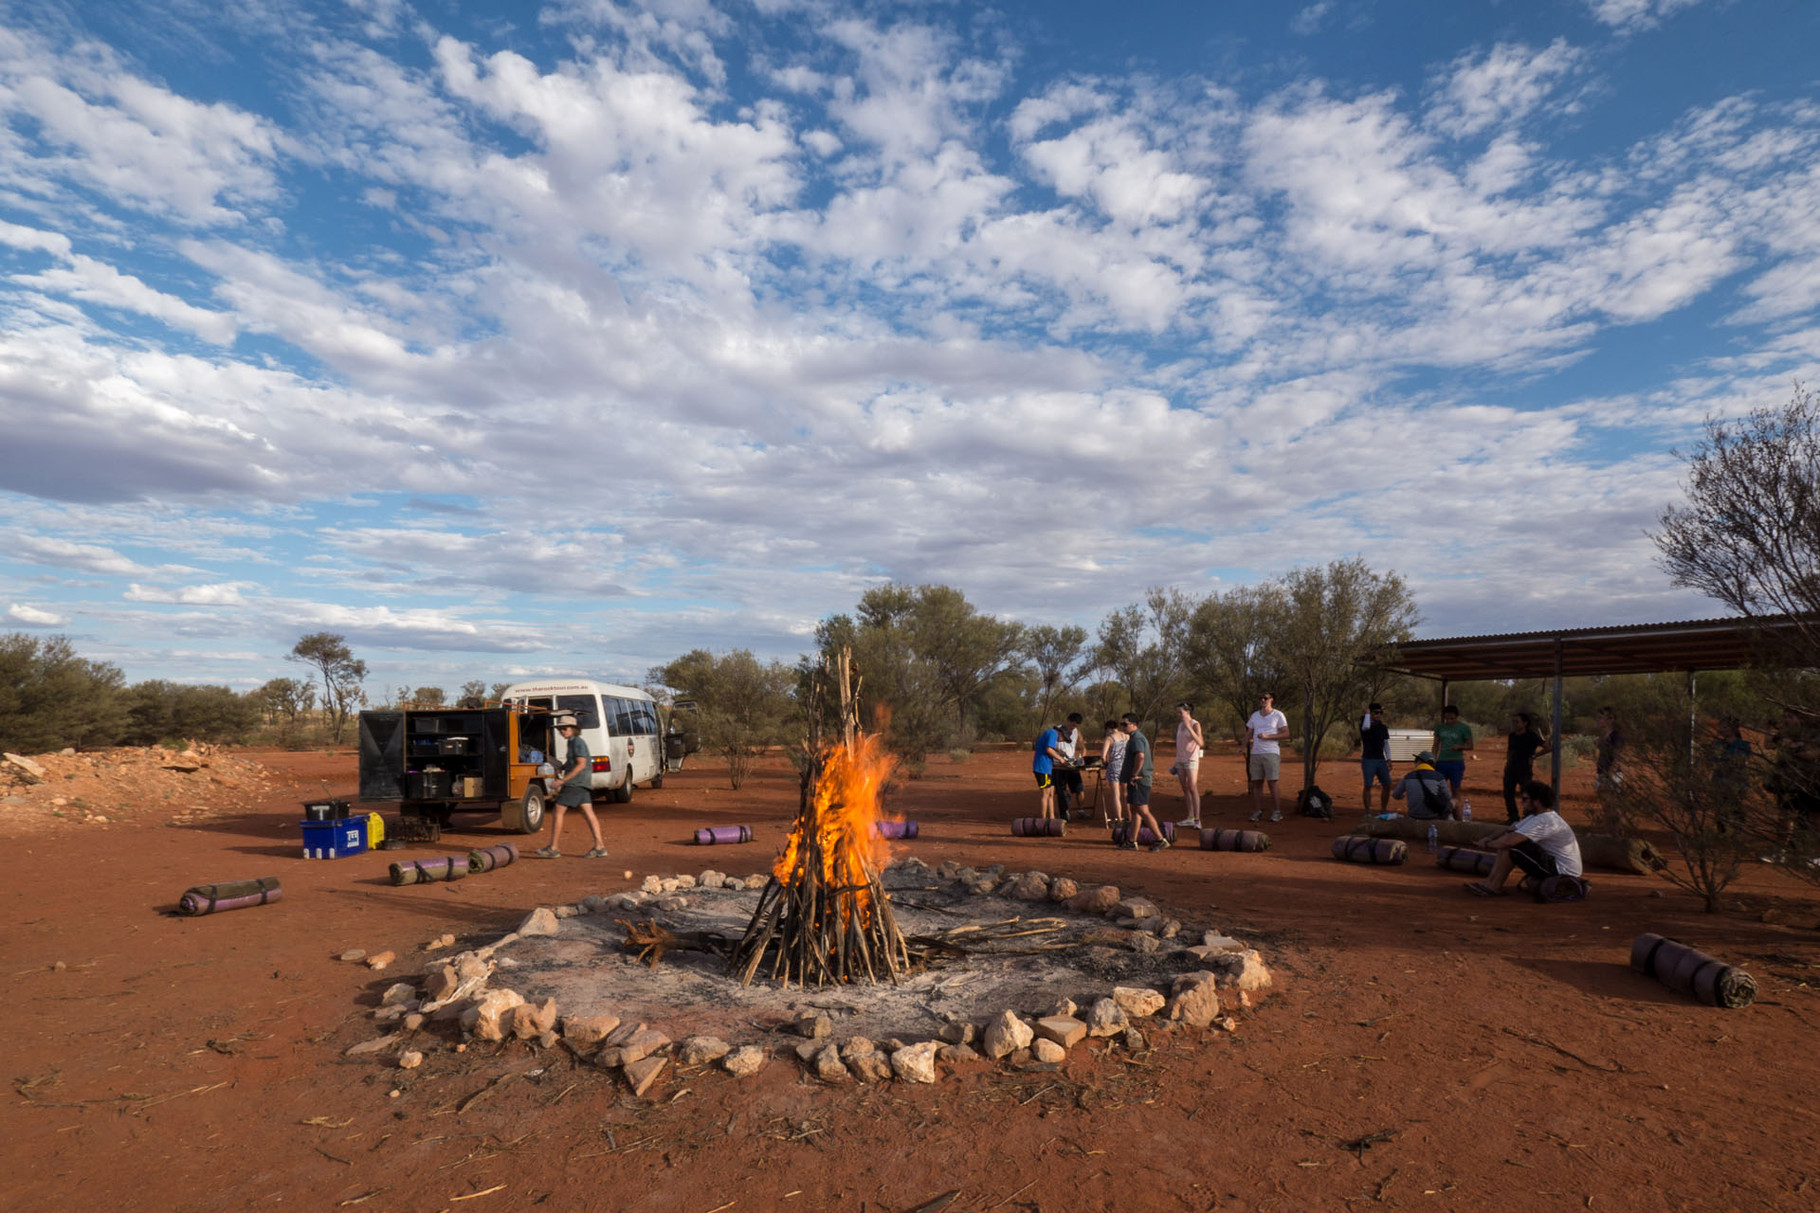 Campfire and camping in the bush, near Uluru